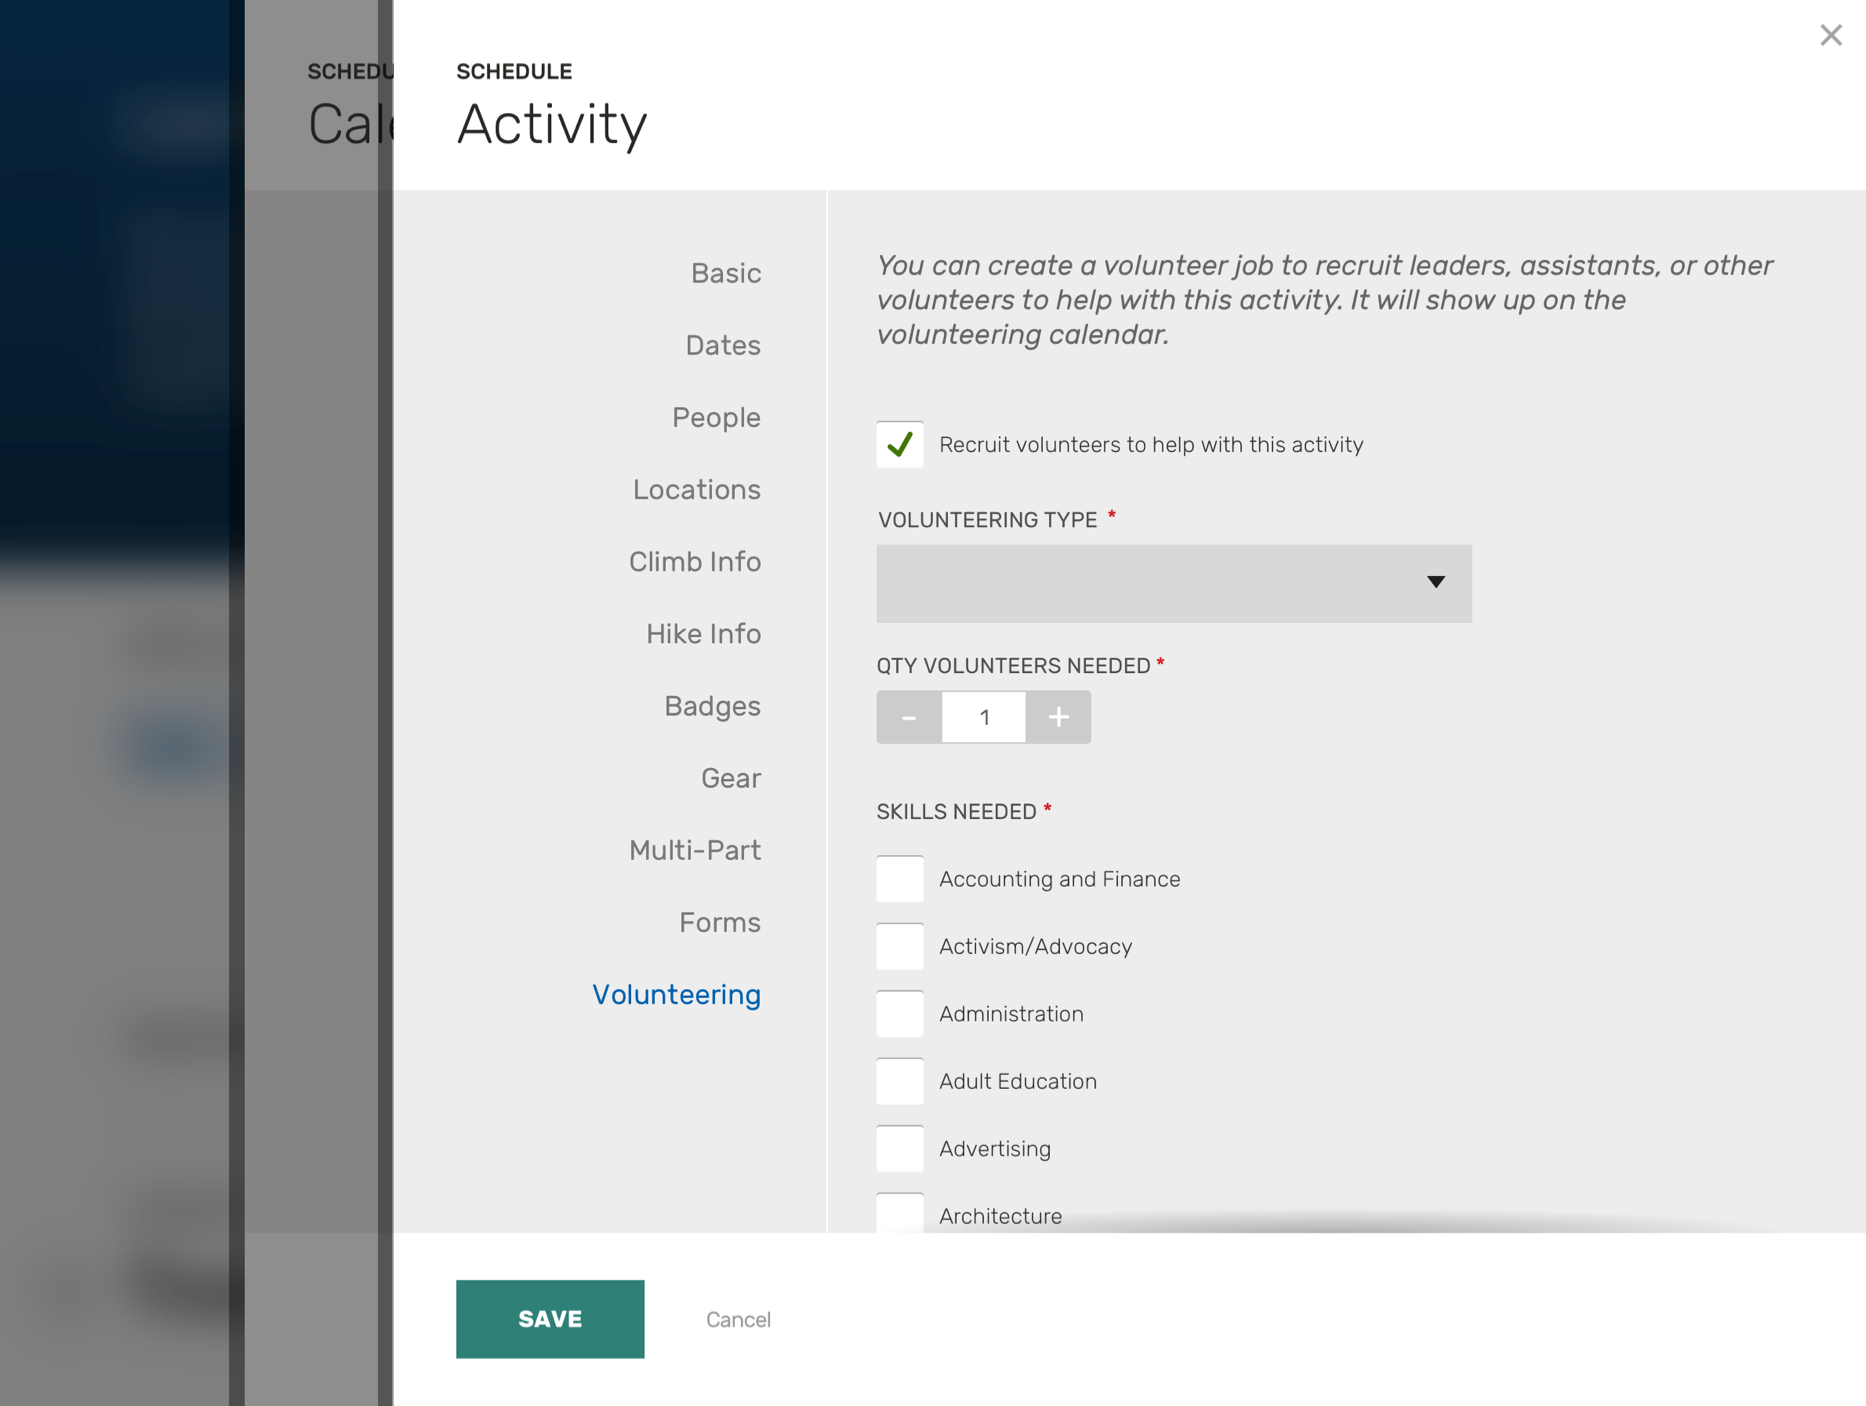 Screenshot: UI panel for scheduling an activity, with options for volunteer recruitment